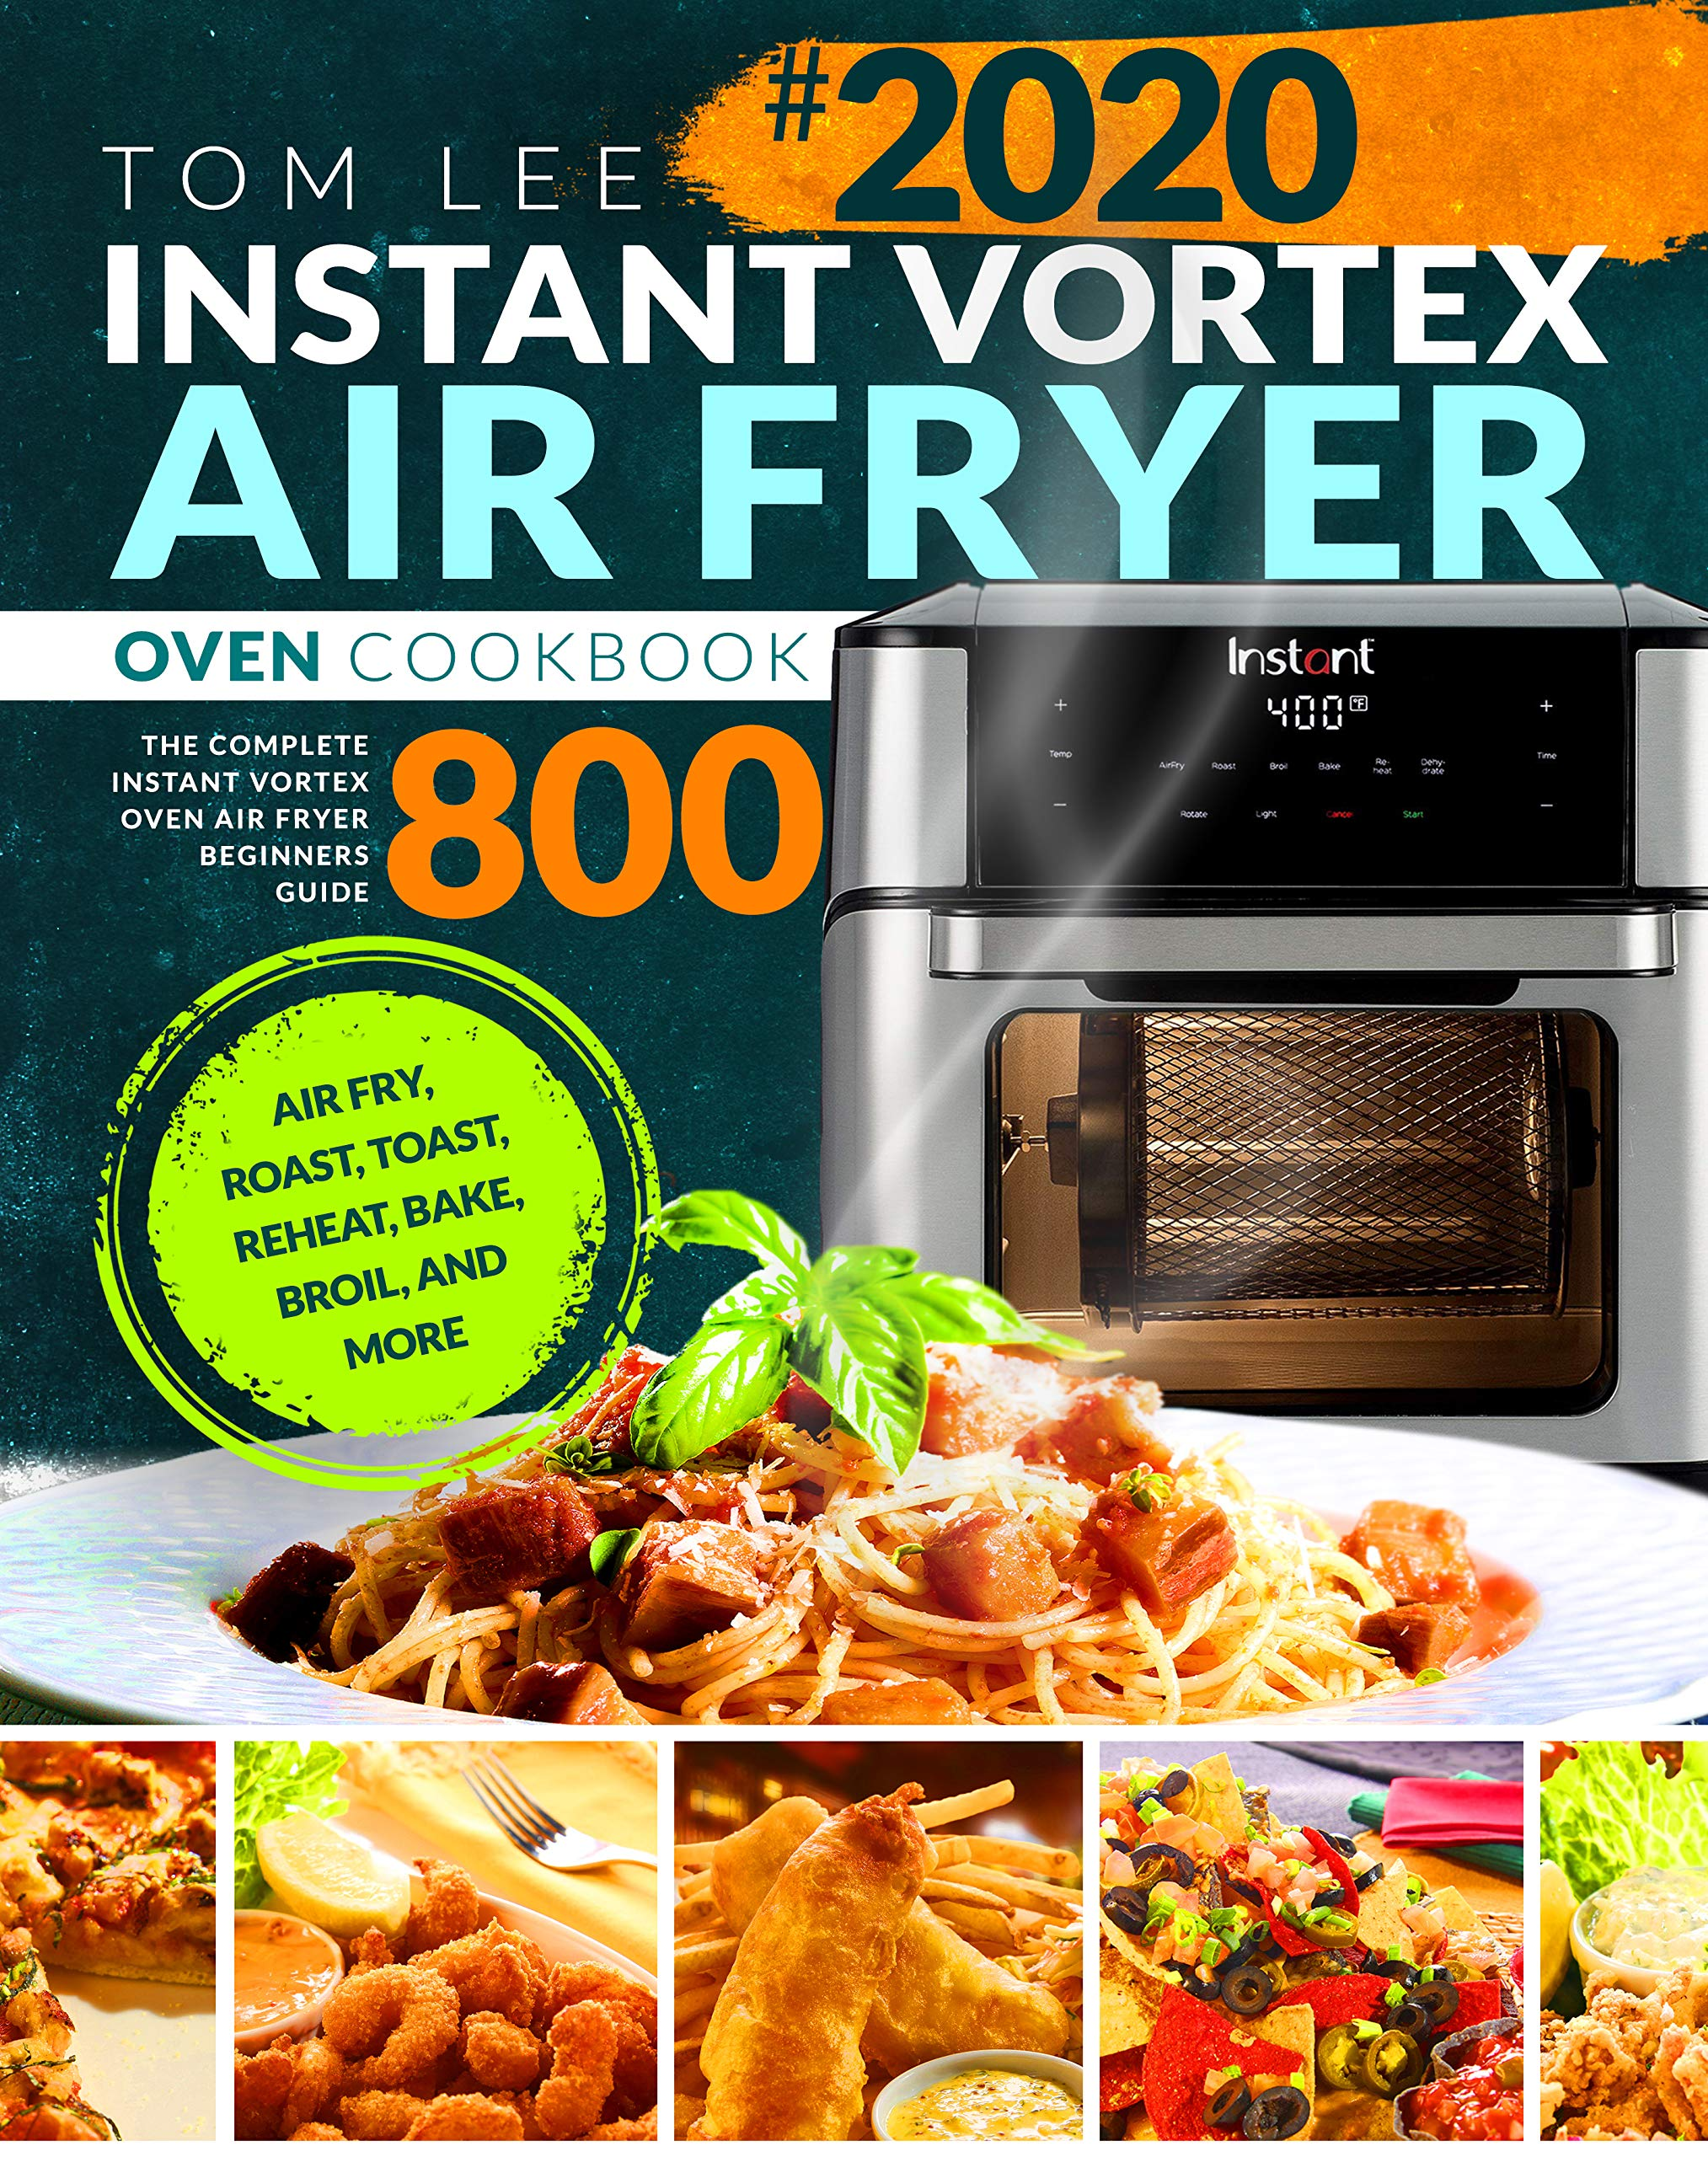 Instant Vortex Air Fryer Oven Cookbook: The Complete Instant Vortex Oven Air Fryer Beginners Guide Air Fry, Roast, Toast, Reheat, Bake, Broil, and More Tom Lee